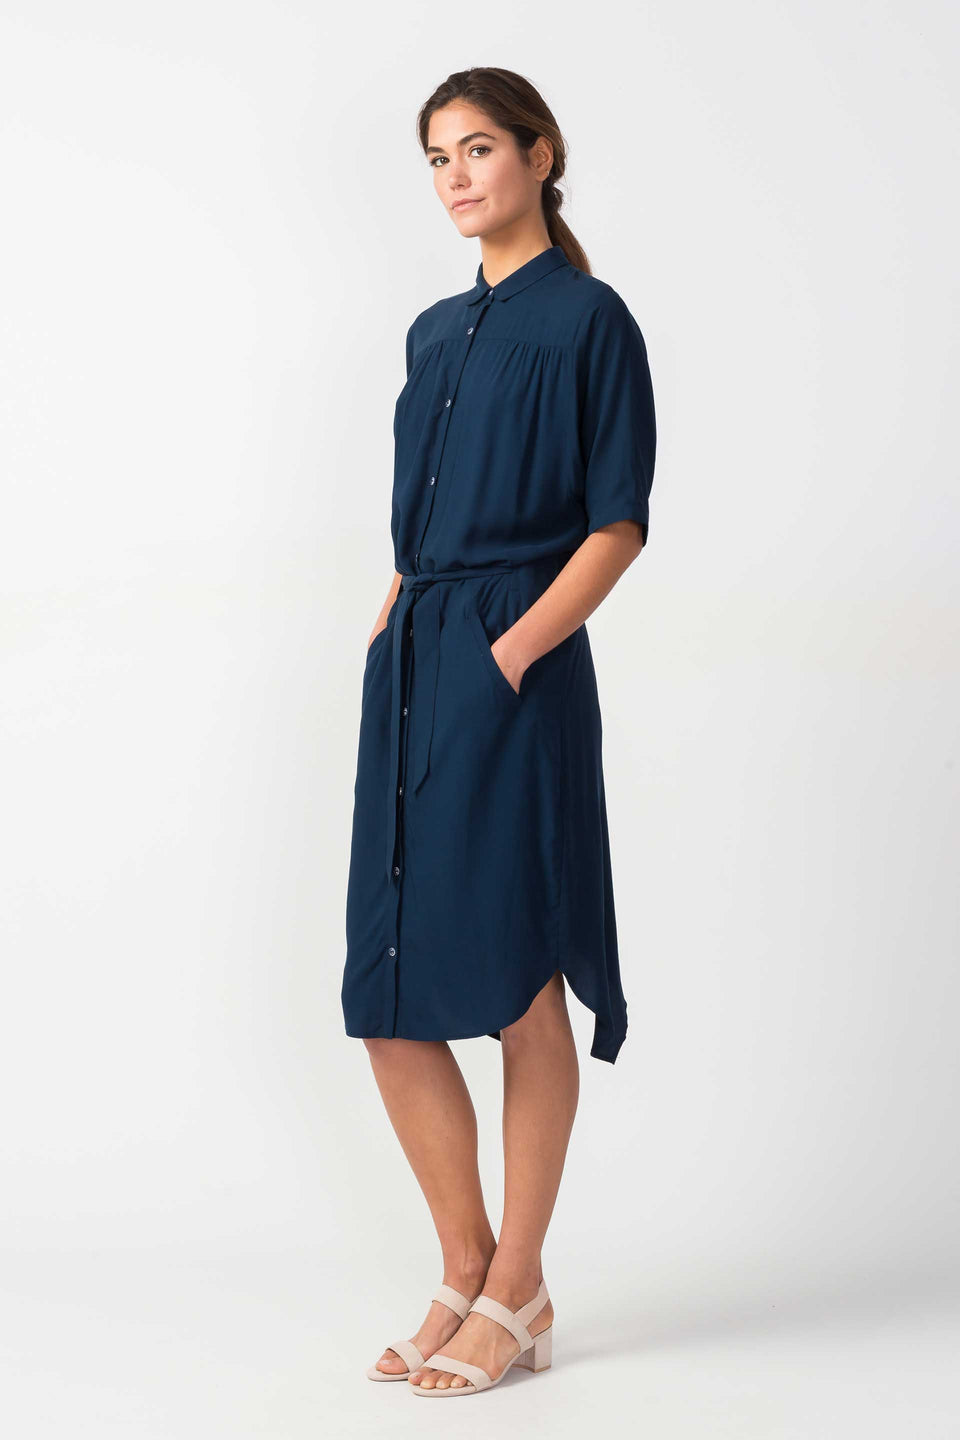 Urrika Dress in Dark Blue